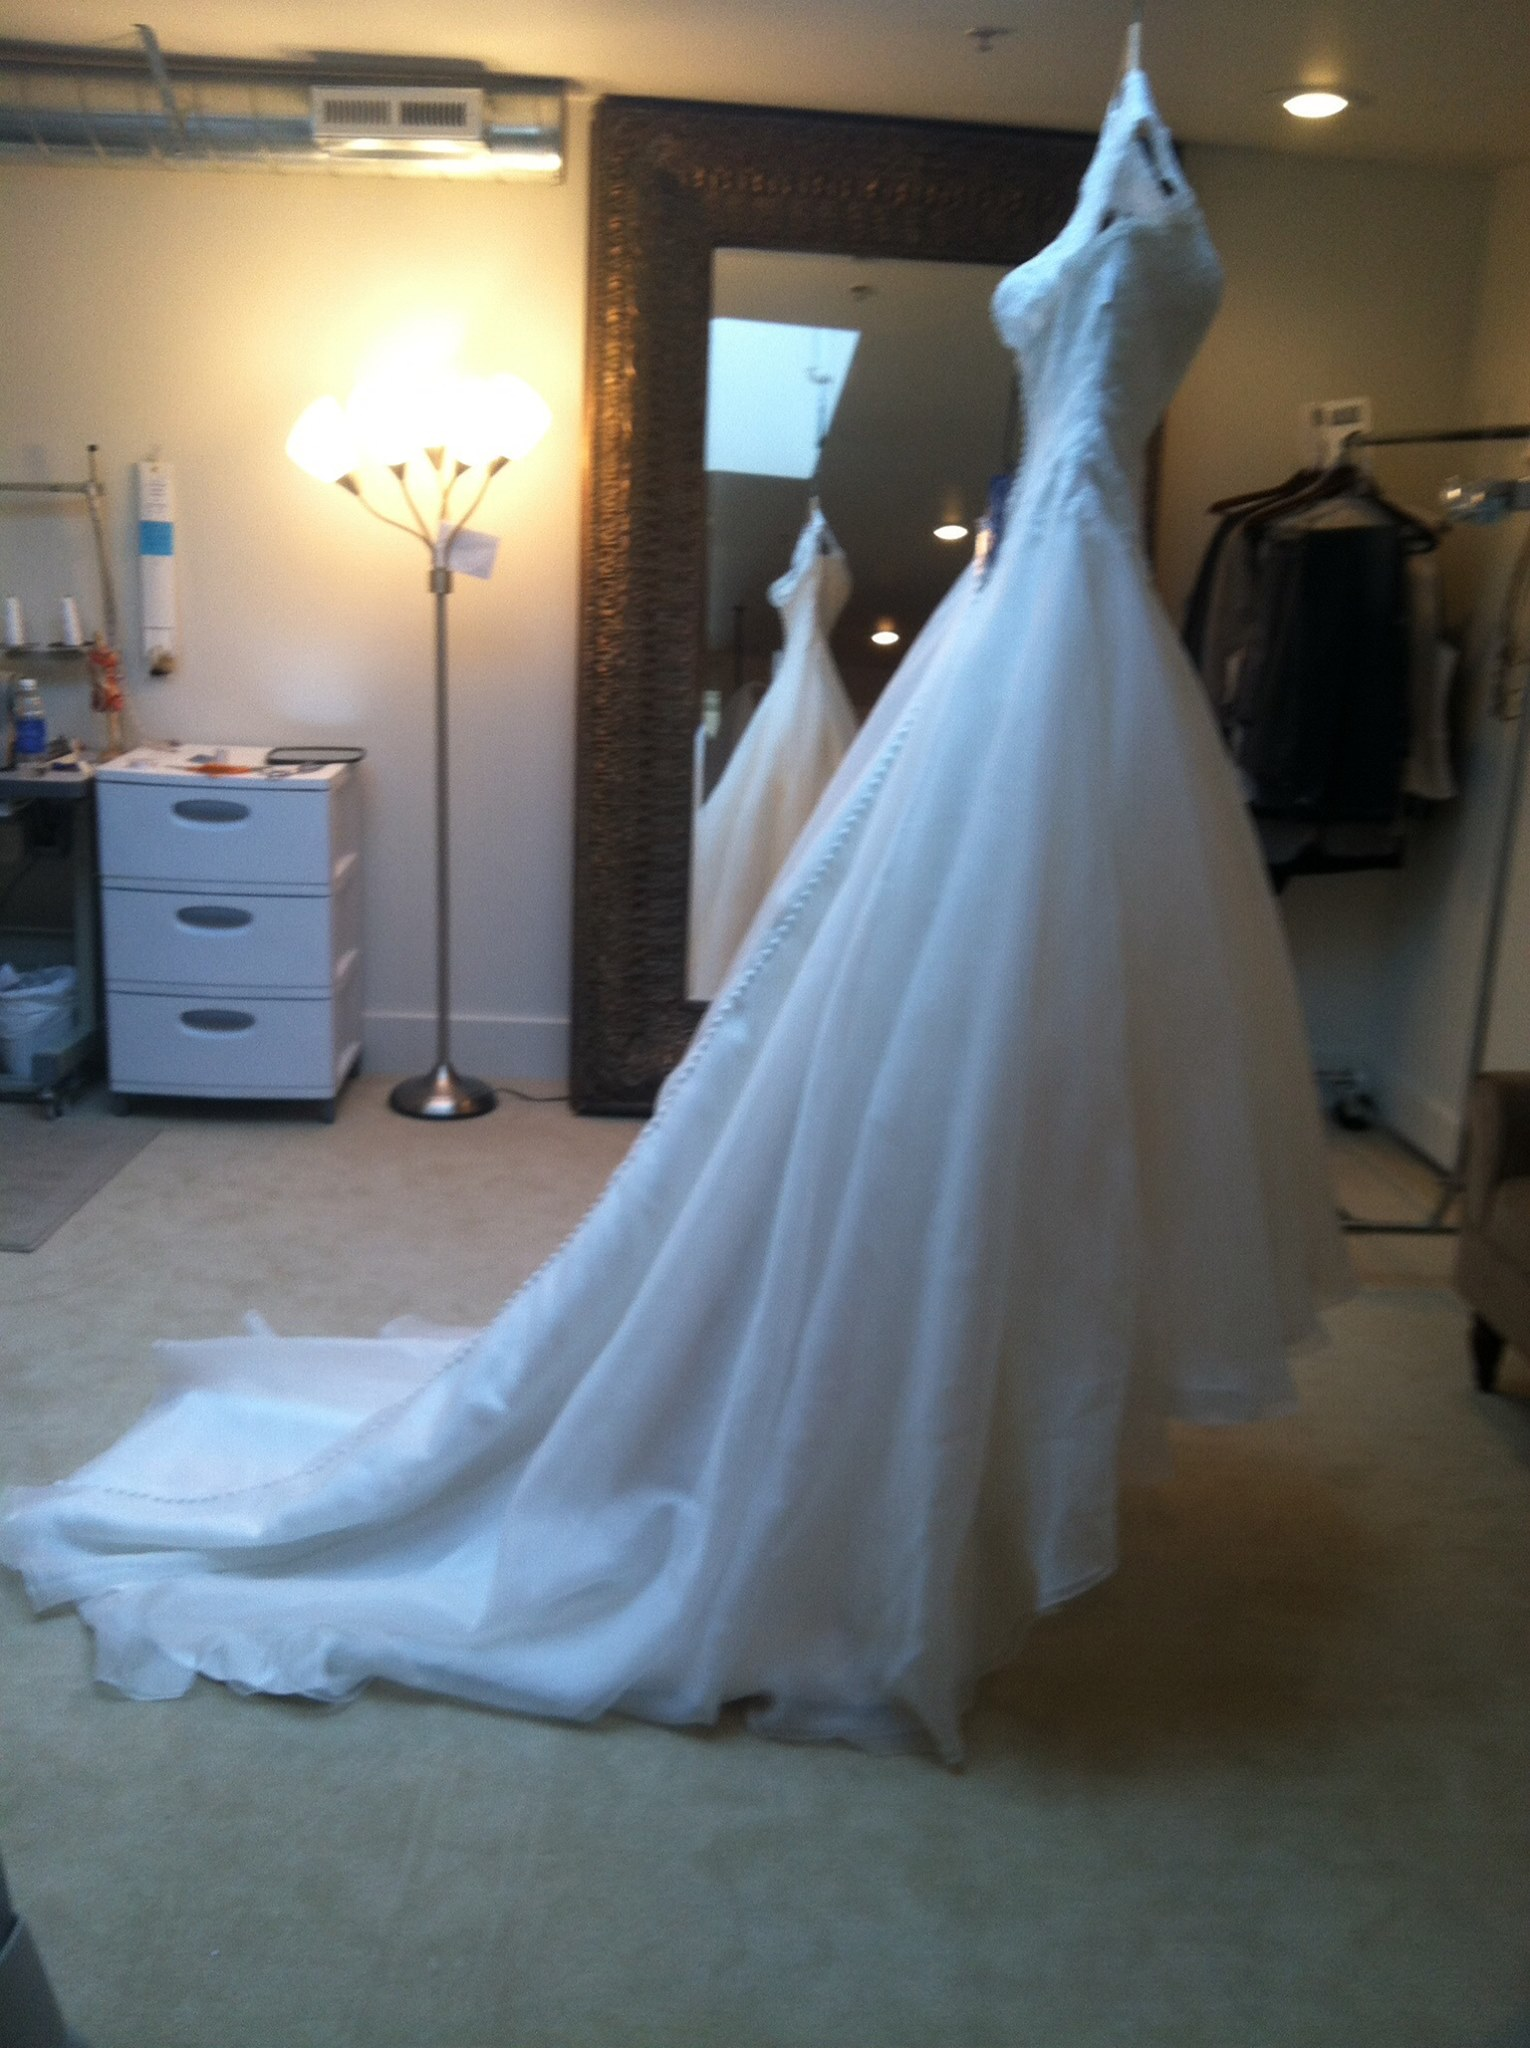 Professional Wedding Gown Steaming - Montana Wedding Seamstress